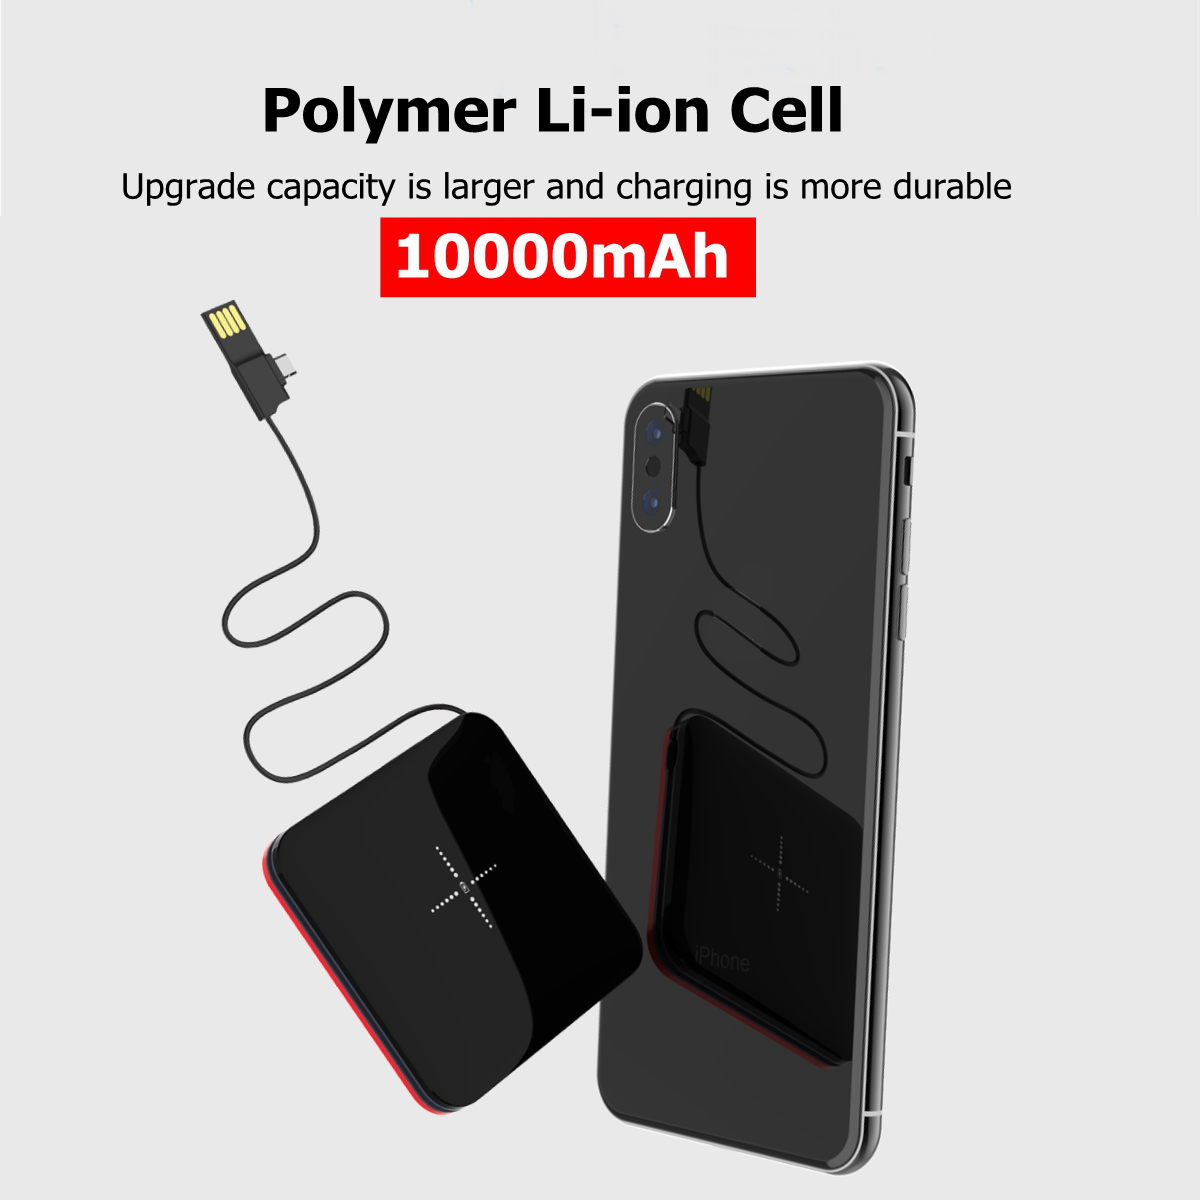 Mobile Power Case Box Usb 18650 Battery Cover Keychain For Iphone Samsung Mp3 Free Shipping Drop Shipping Firm In Structure Accessories & Parts Chargers